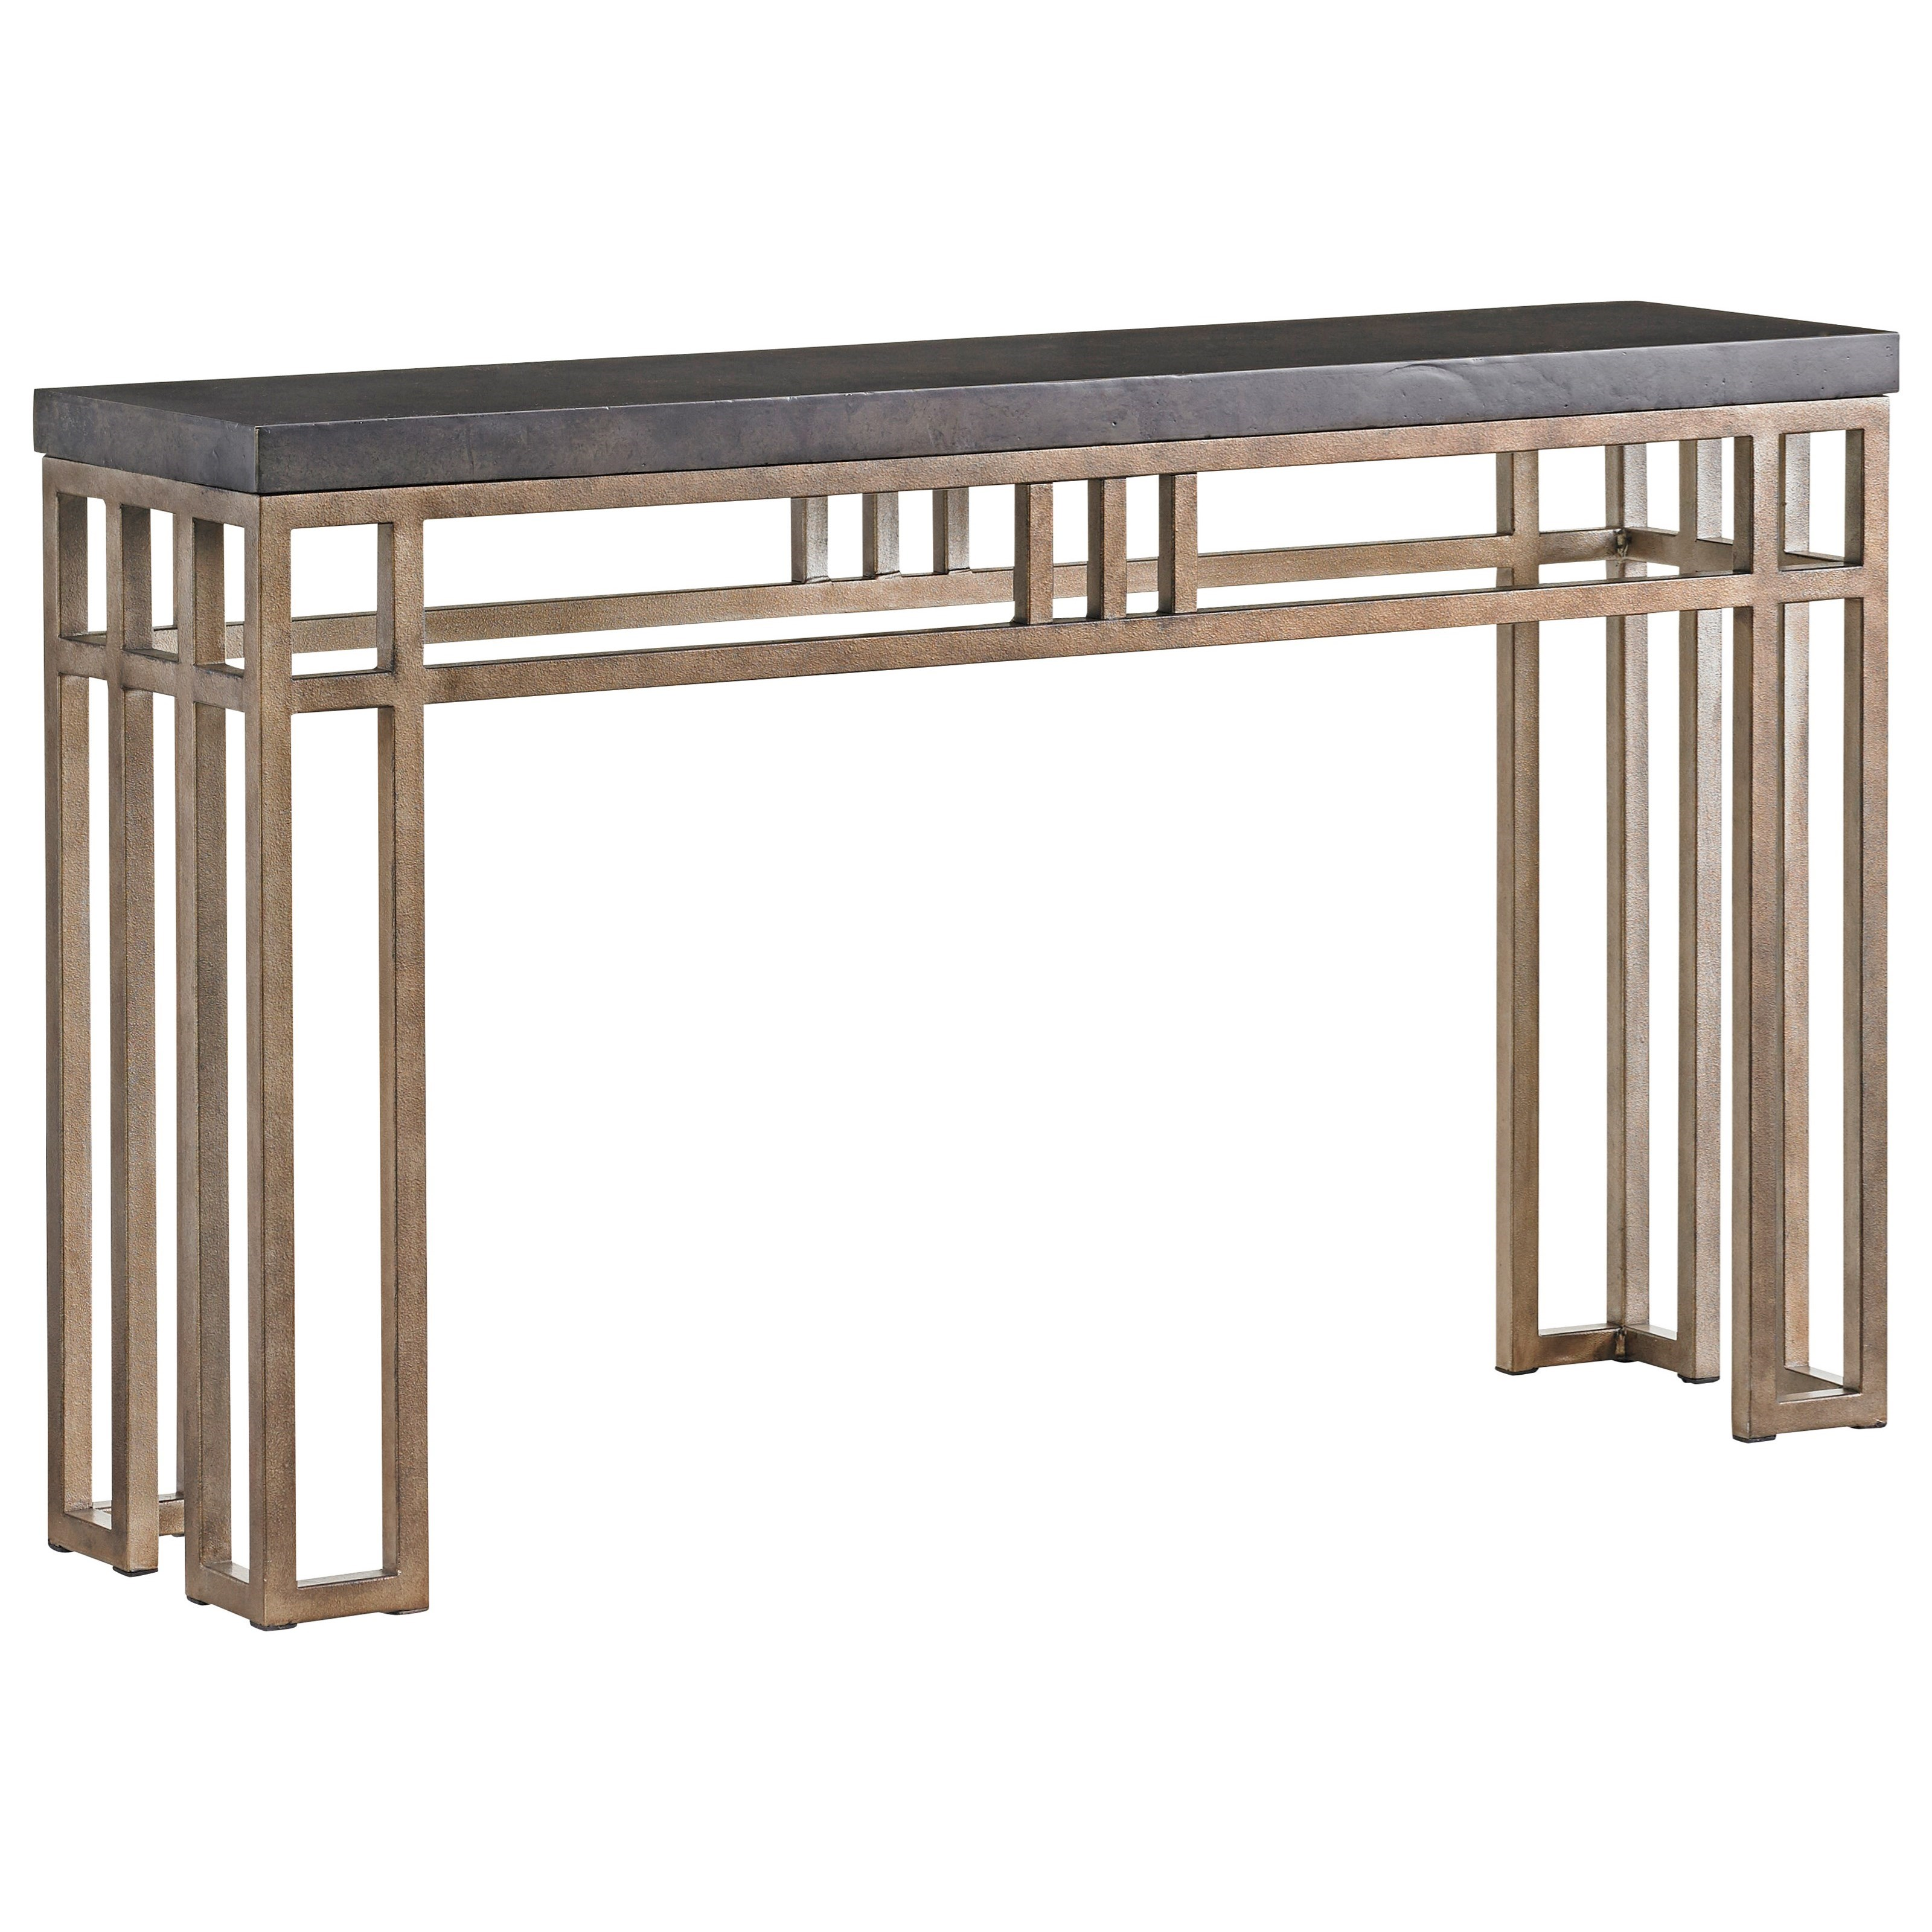 Cypress Point Montera Travertine Console by Tommy Bahama Home at Baer's Furniture